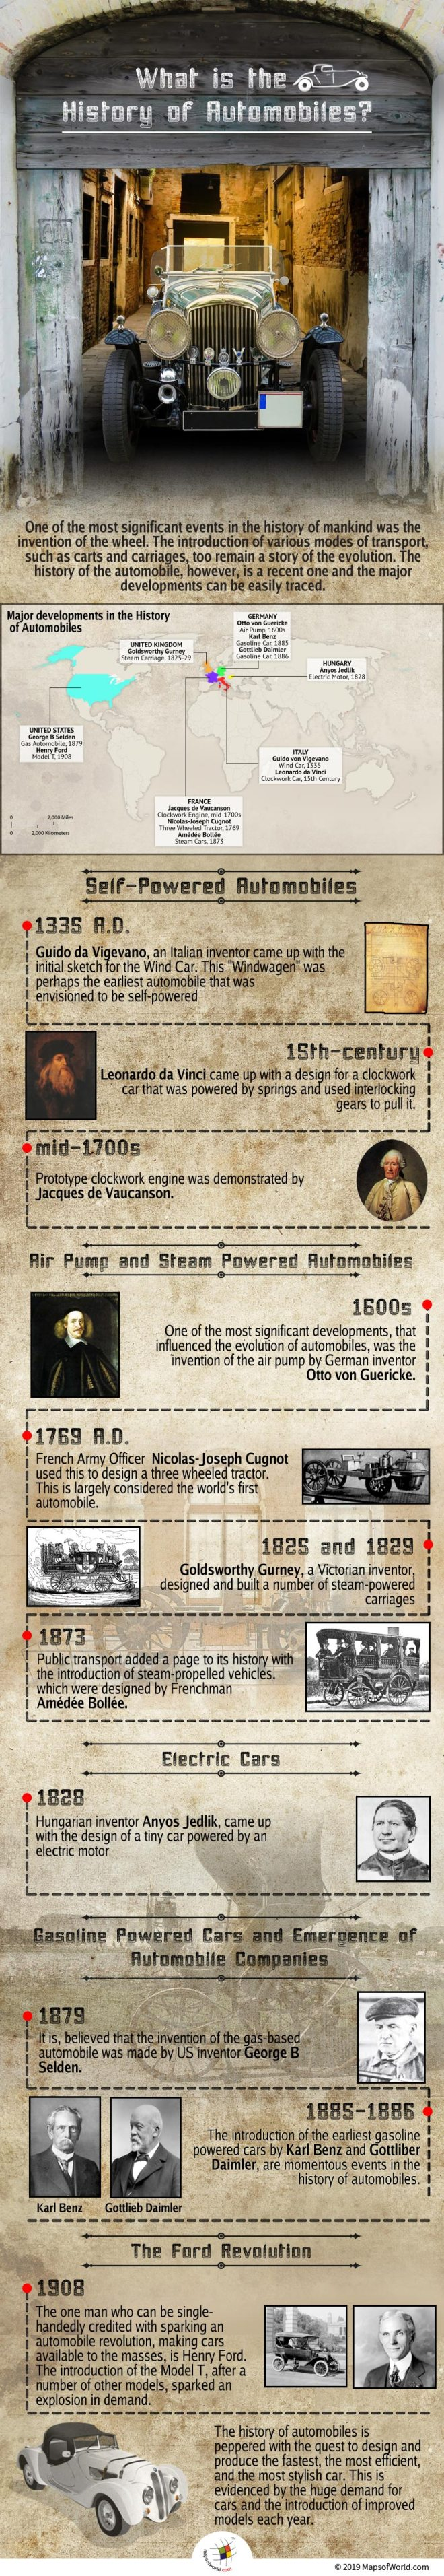 Infographic Giving Details on The History of Automobiles